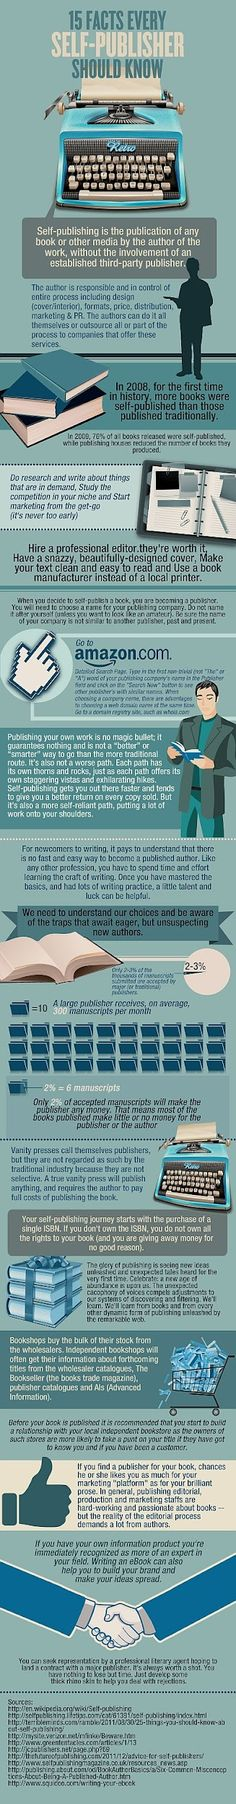 15 facts about self-publishing